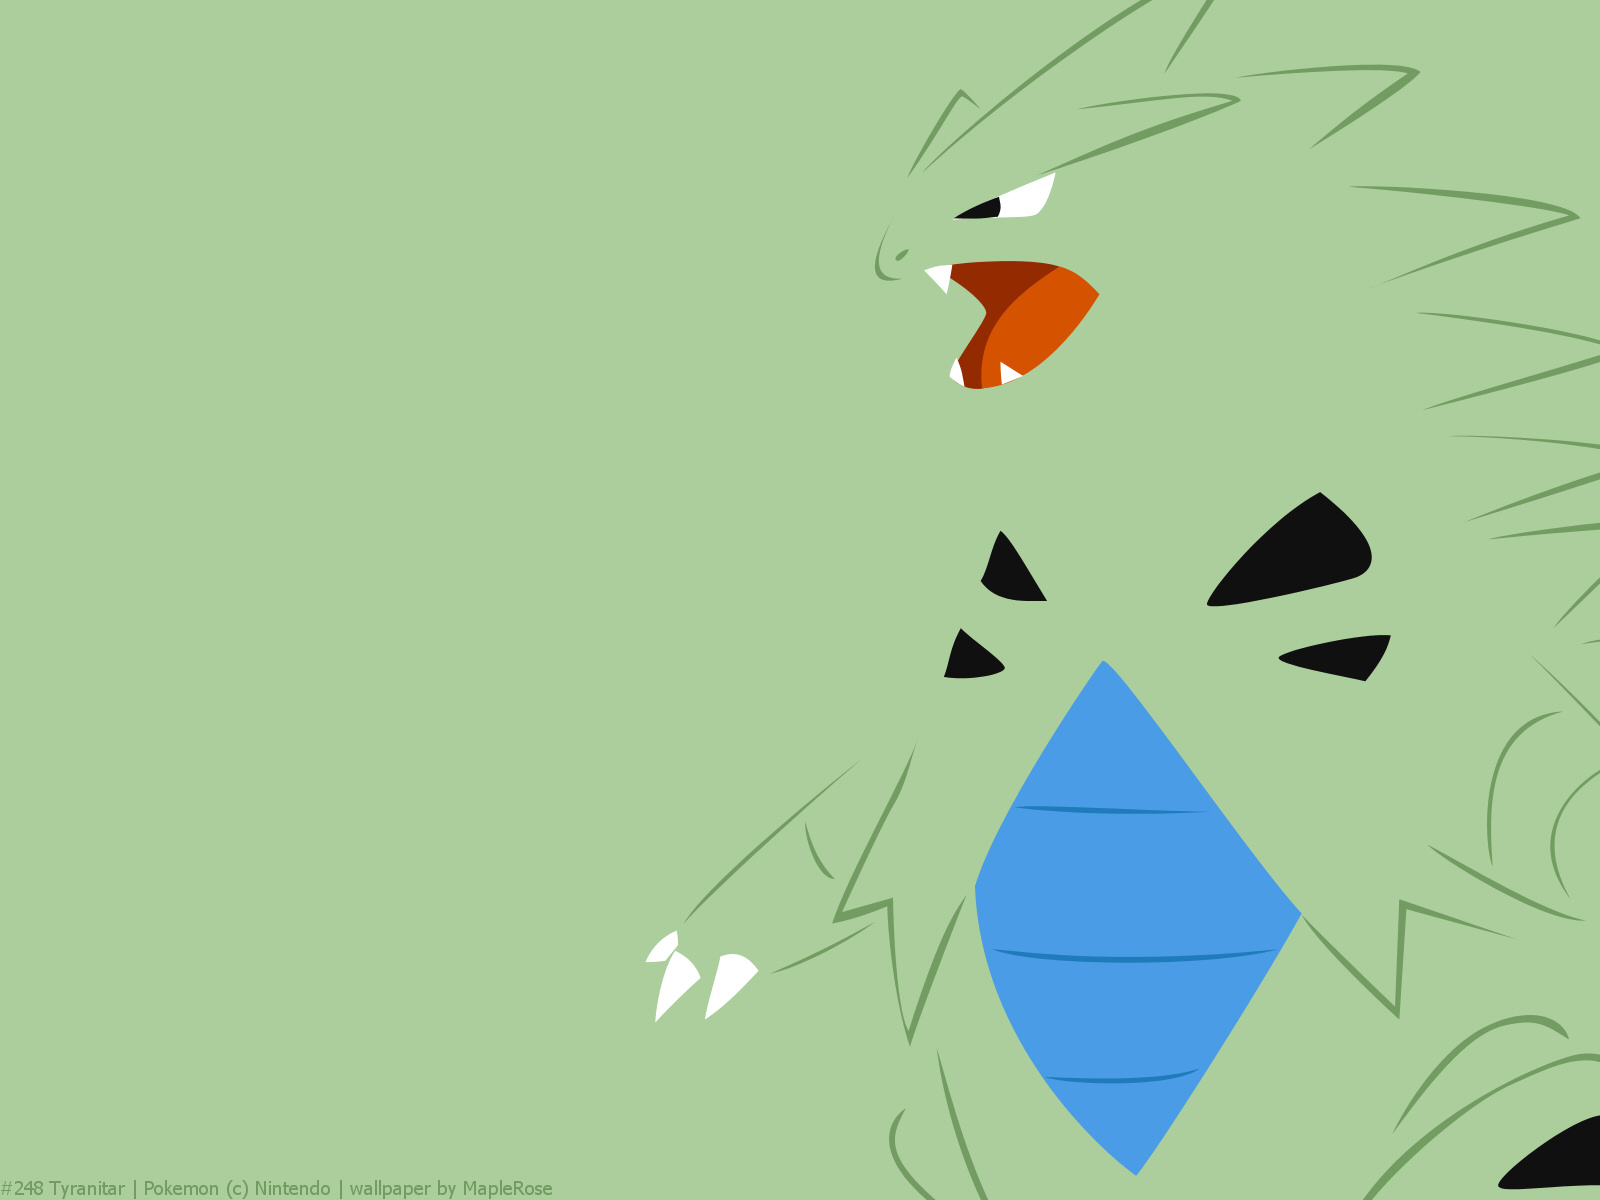 What attacks can larvitar learn